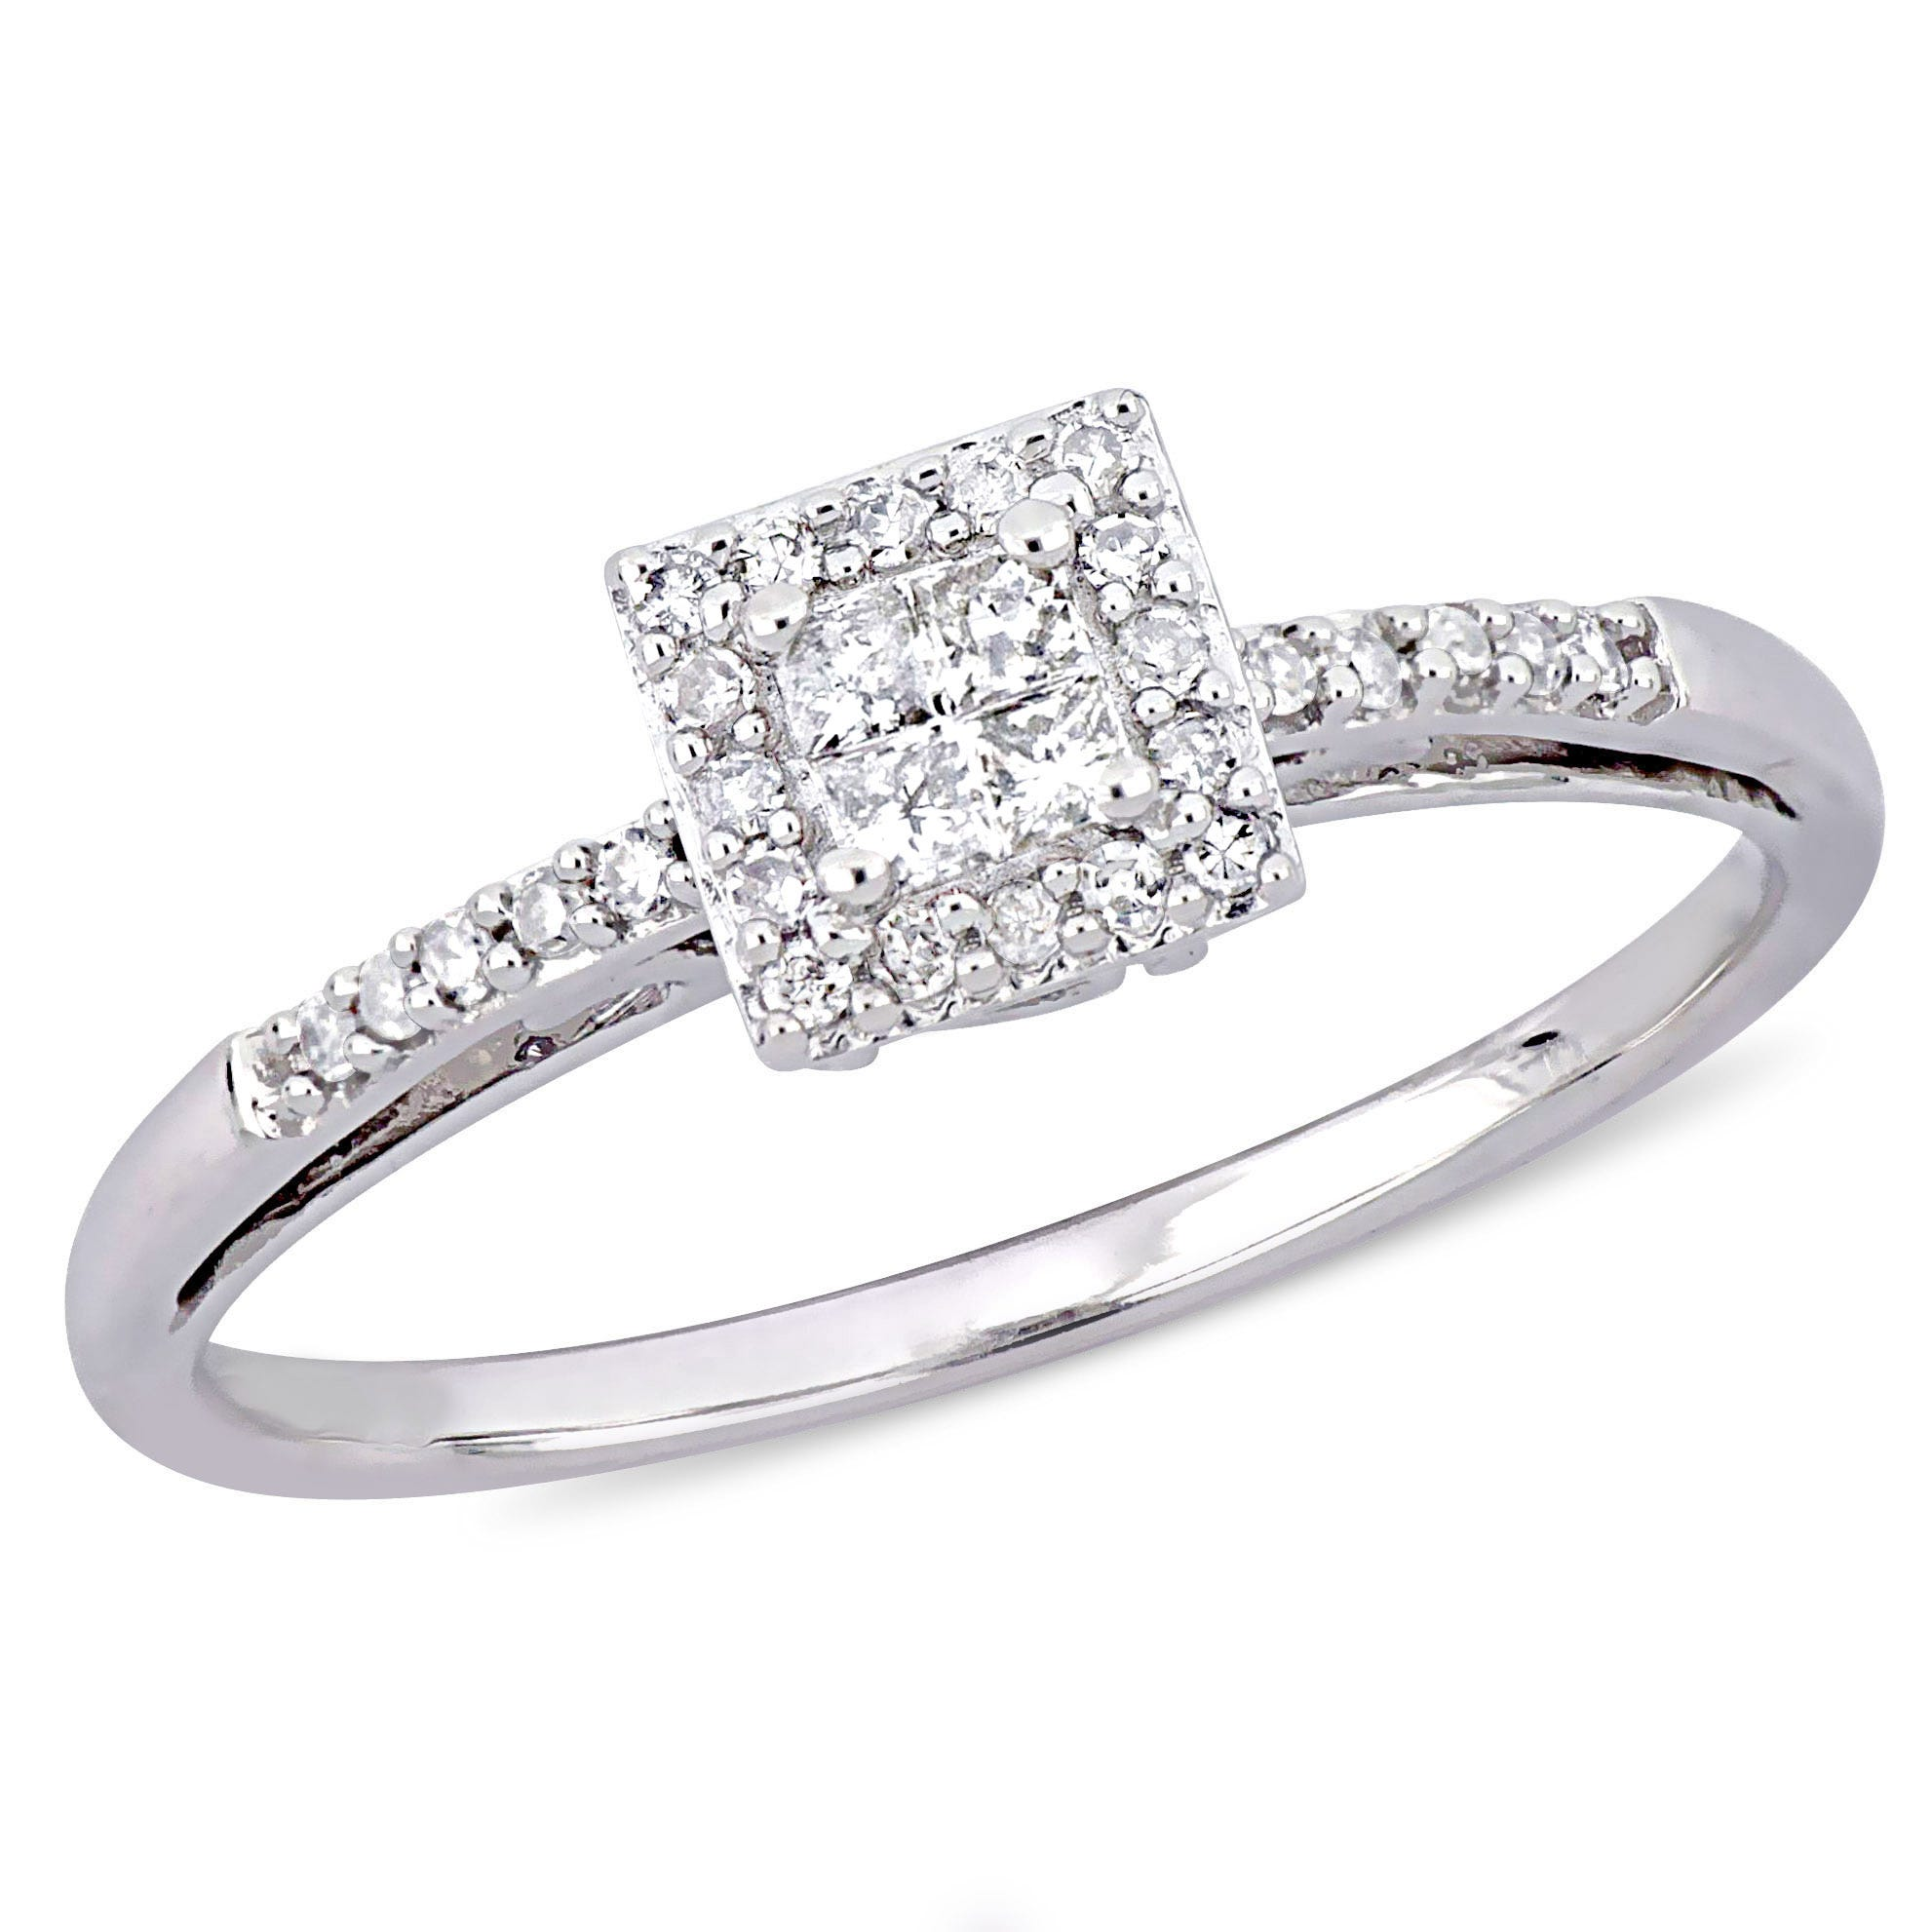 Princess & Round Cut Diamond Halo Promise Ring 1/5ctw. in 10k White Gold